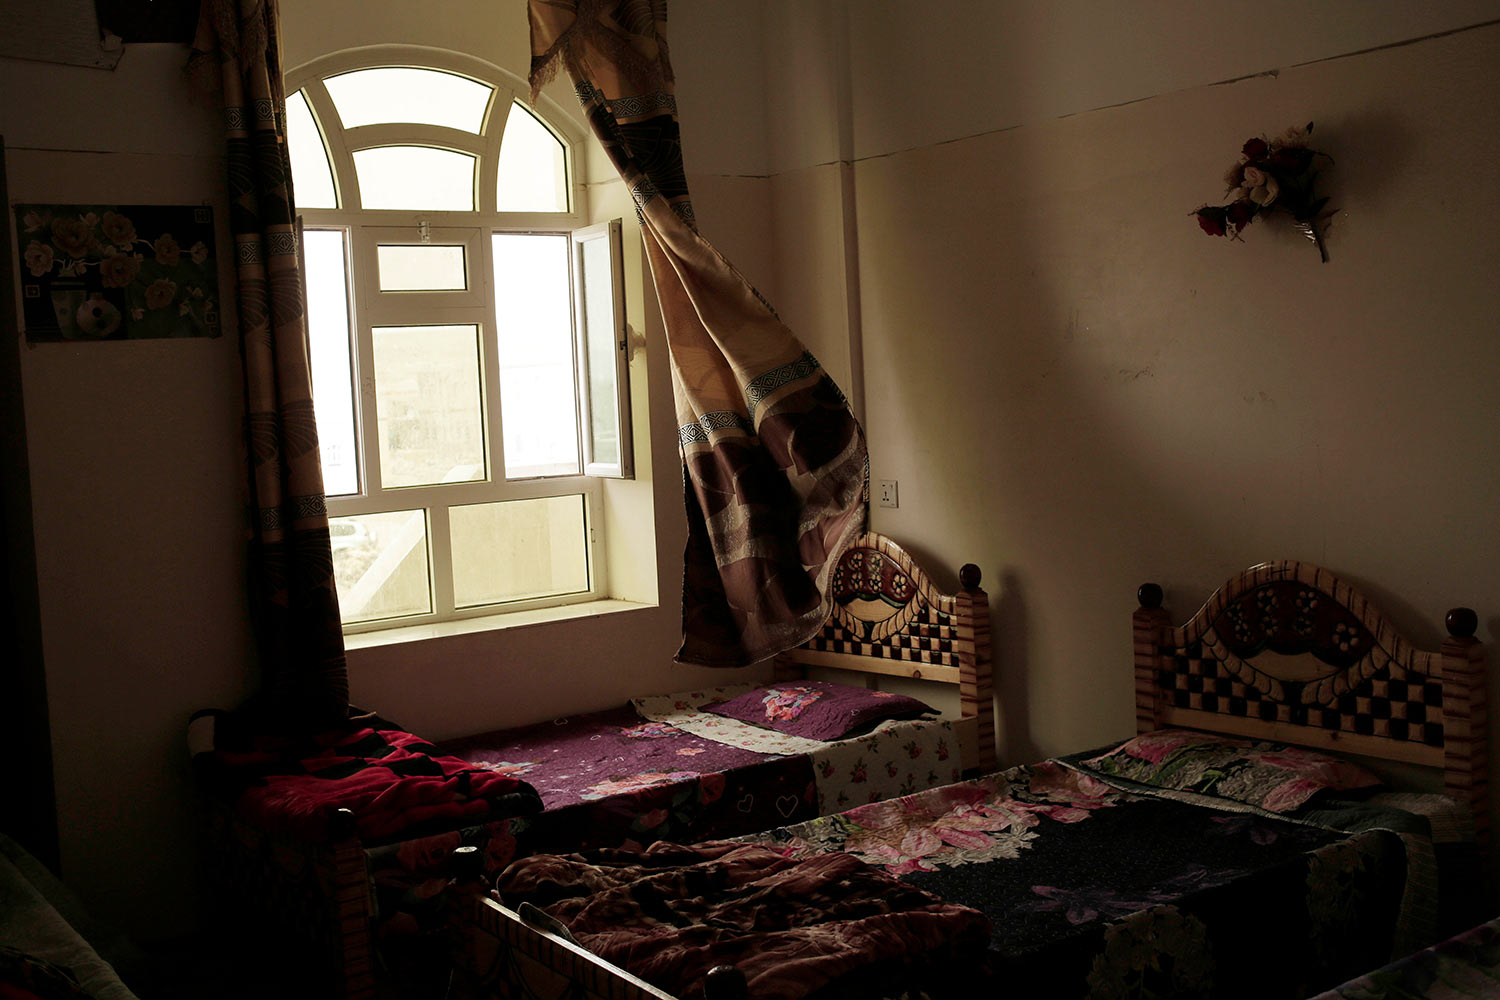 This July 28, 2018, photo shows a bedroom at the Rehabilitation Of Children Recruited and Impacted By War in Yemen Project center in Marib, Yemen. The Houthis have inducted 18,000 child soldiers into their rebel army since the beginning of the war in 2014, a senior Houthi military official acknowledged to The Associated Press. (AP Photo/Nariman El-Mofty)